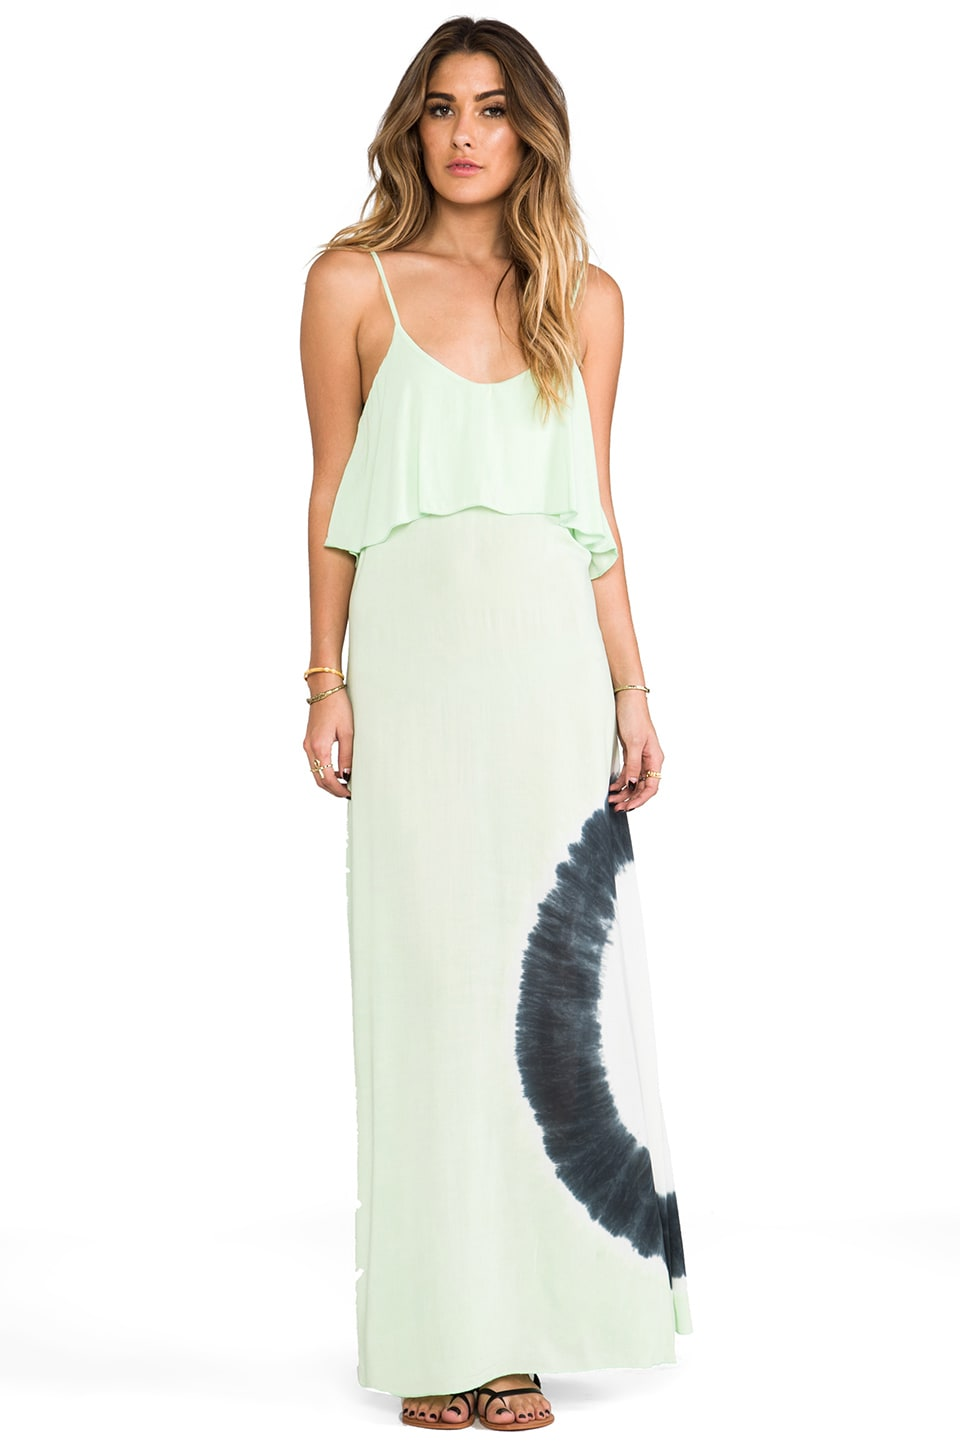 Blue Life Summer Lovin' Maxi Dress in Key Lime Tie Dye